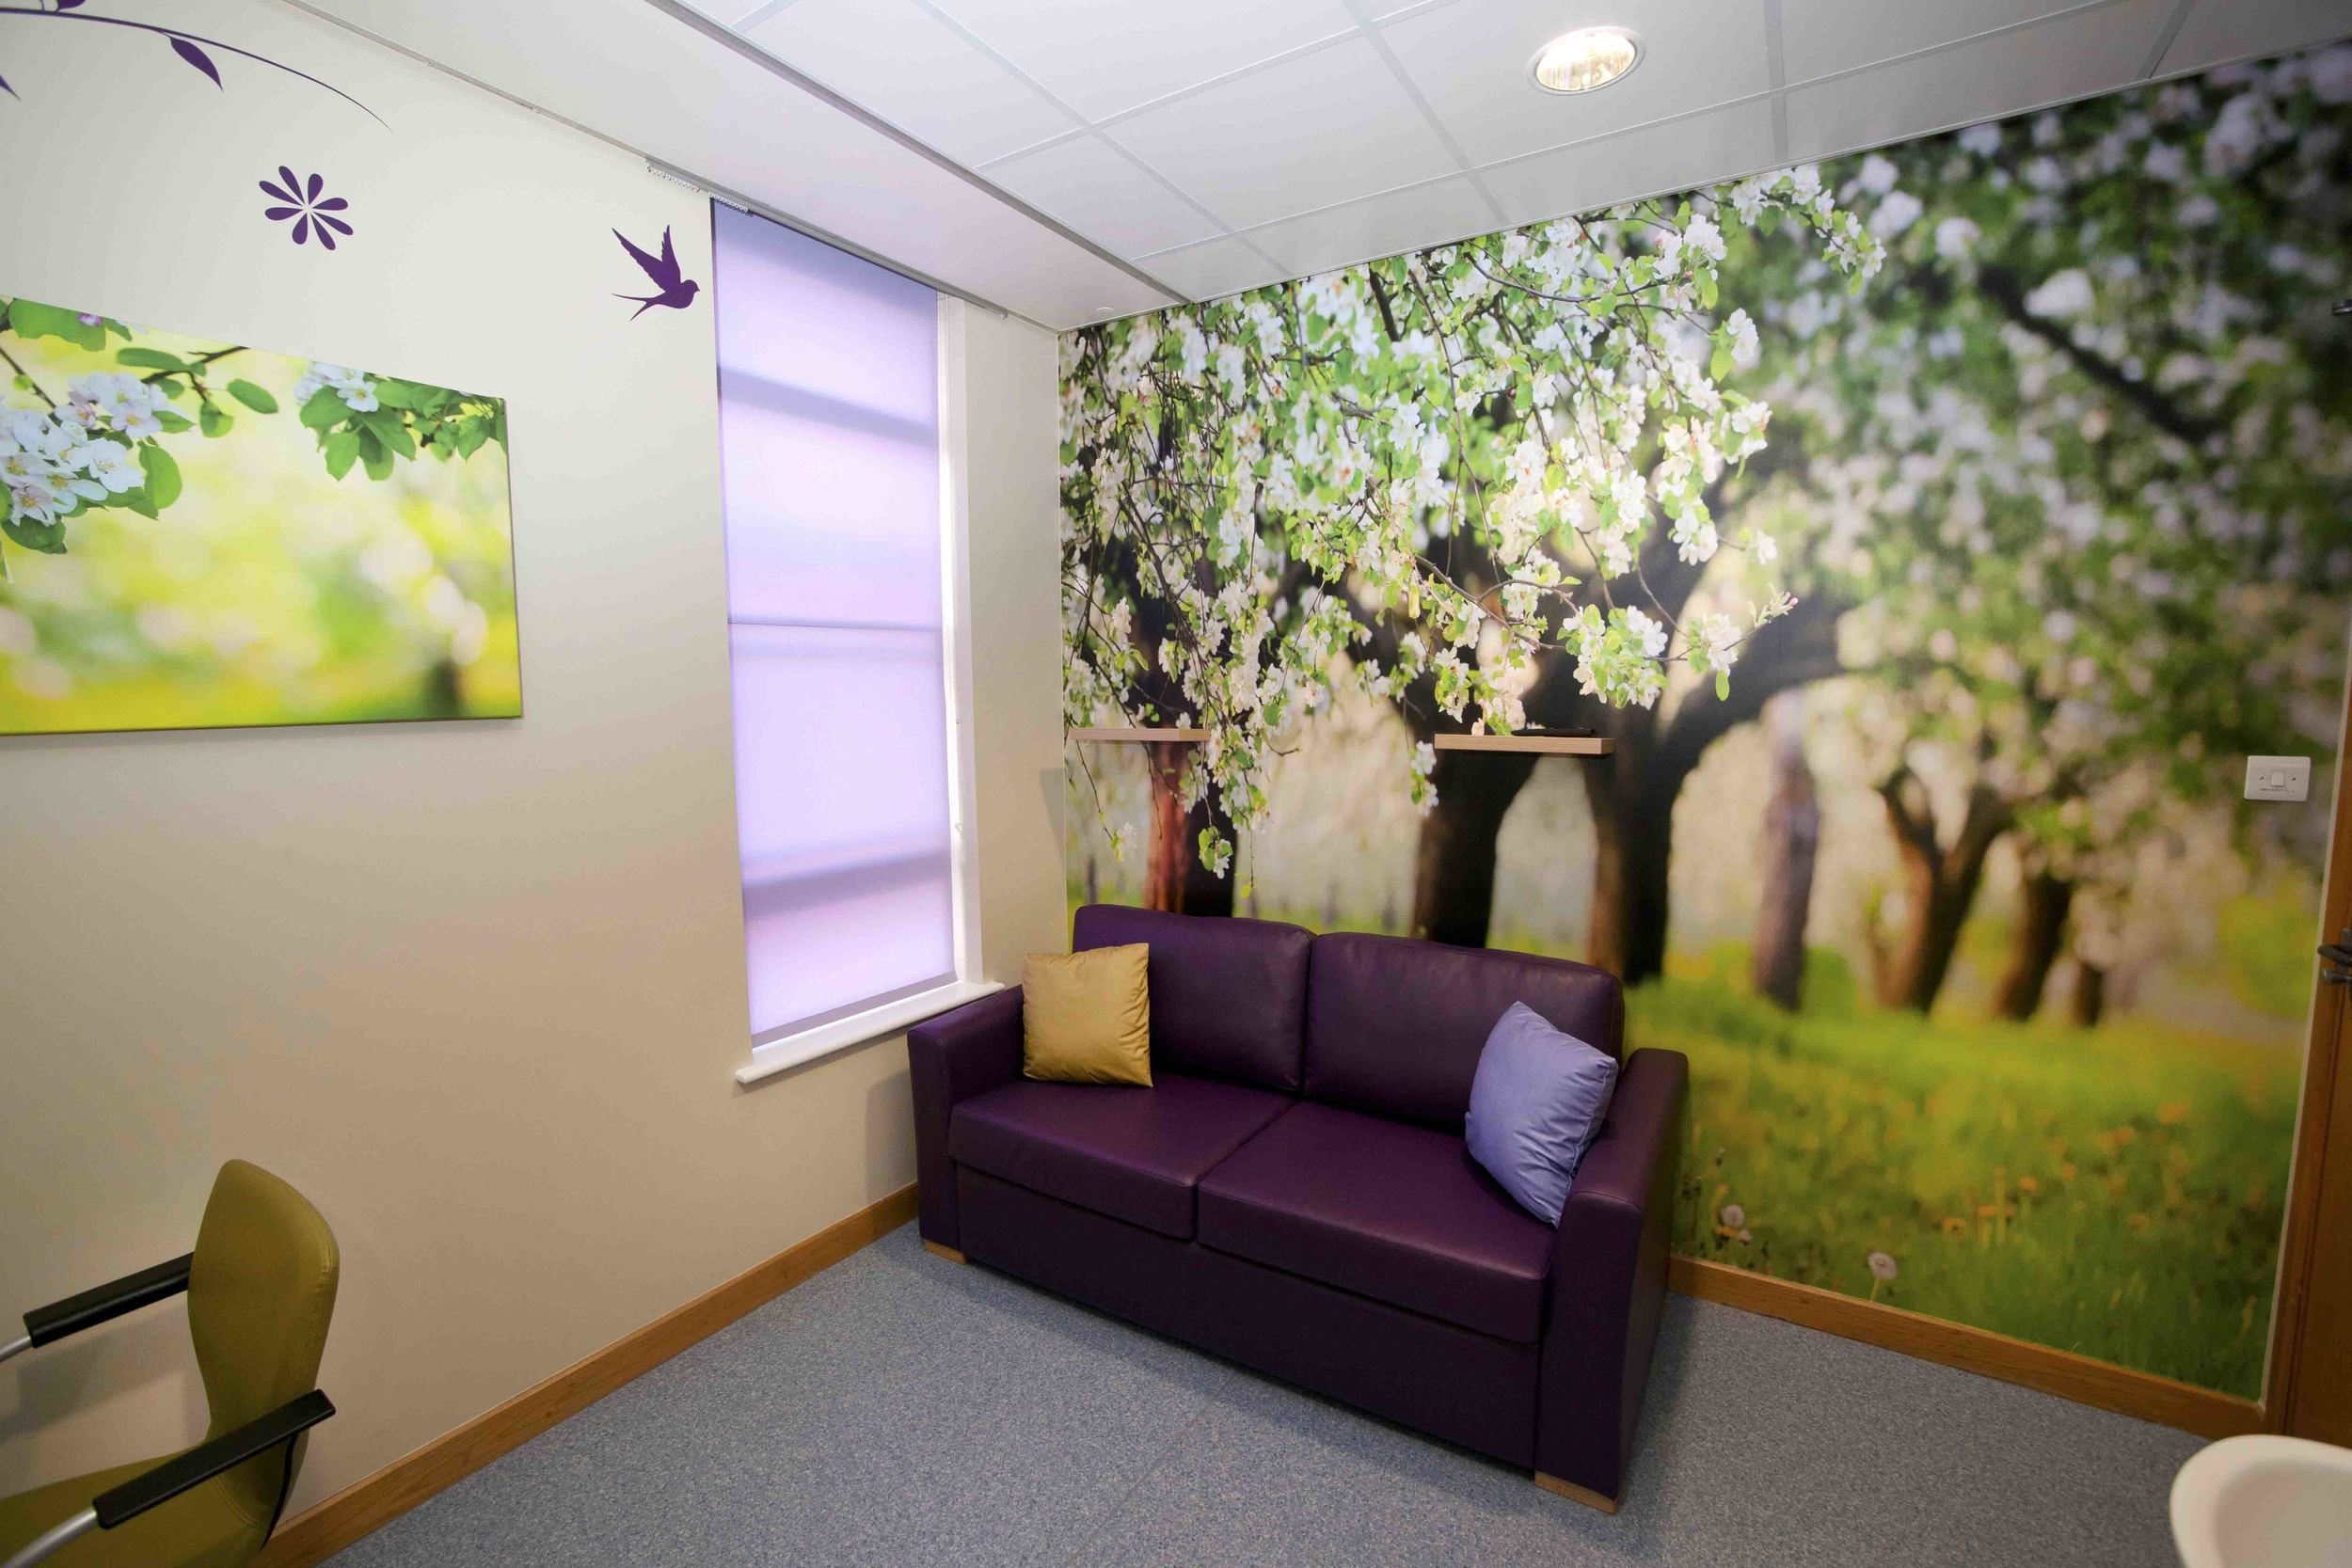 We organised a total revamp of the 3 parent rooms outside the children's intensive care unit at the Leicester Royal Infirmary with the full costs provided by Children's Charity Heartlink.